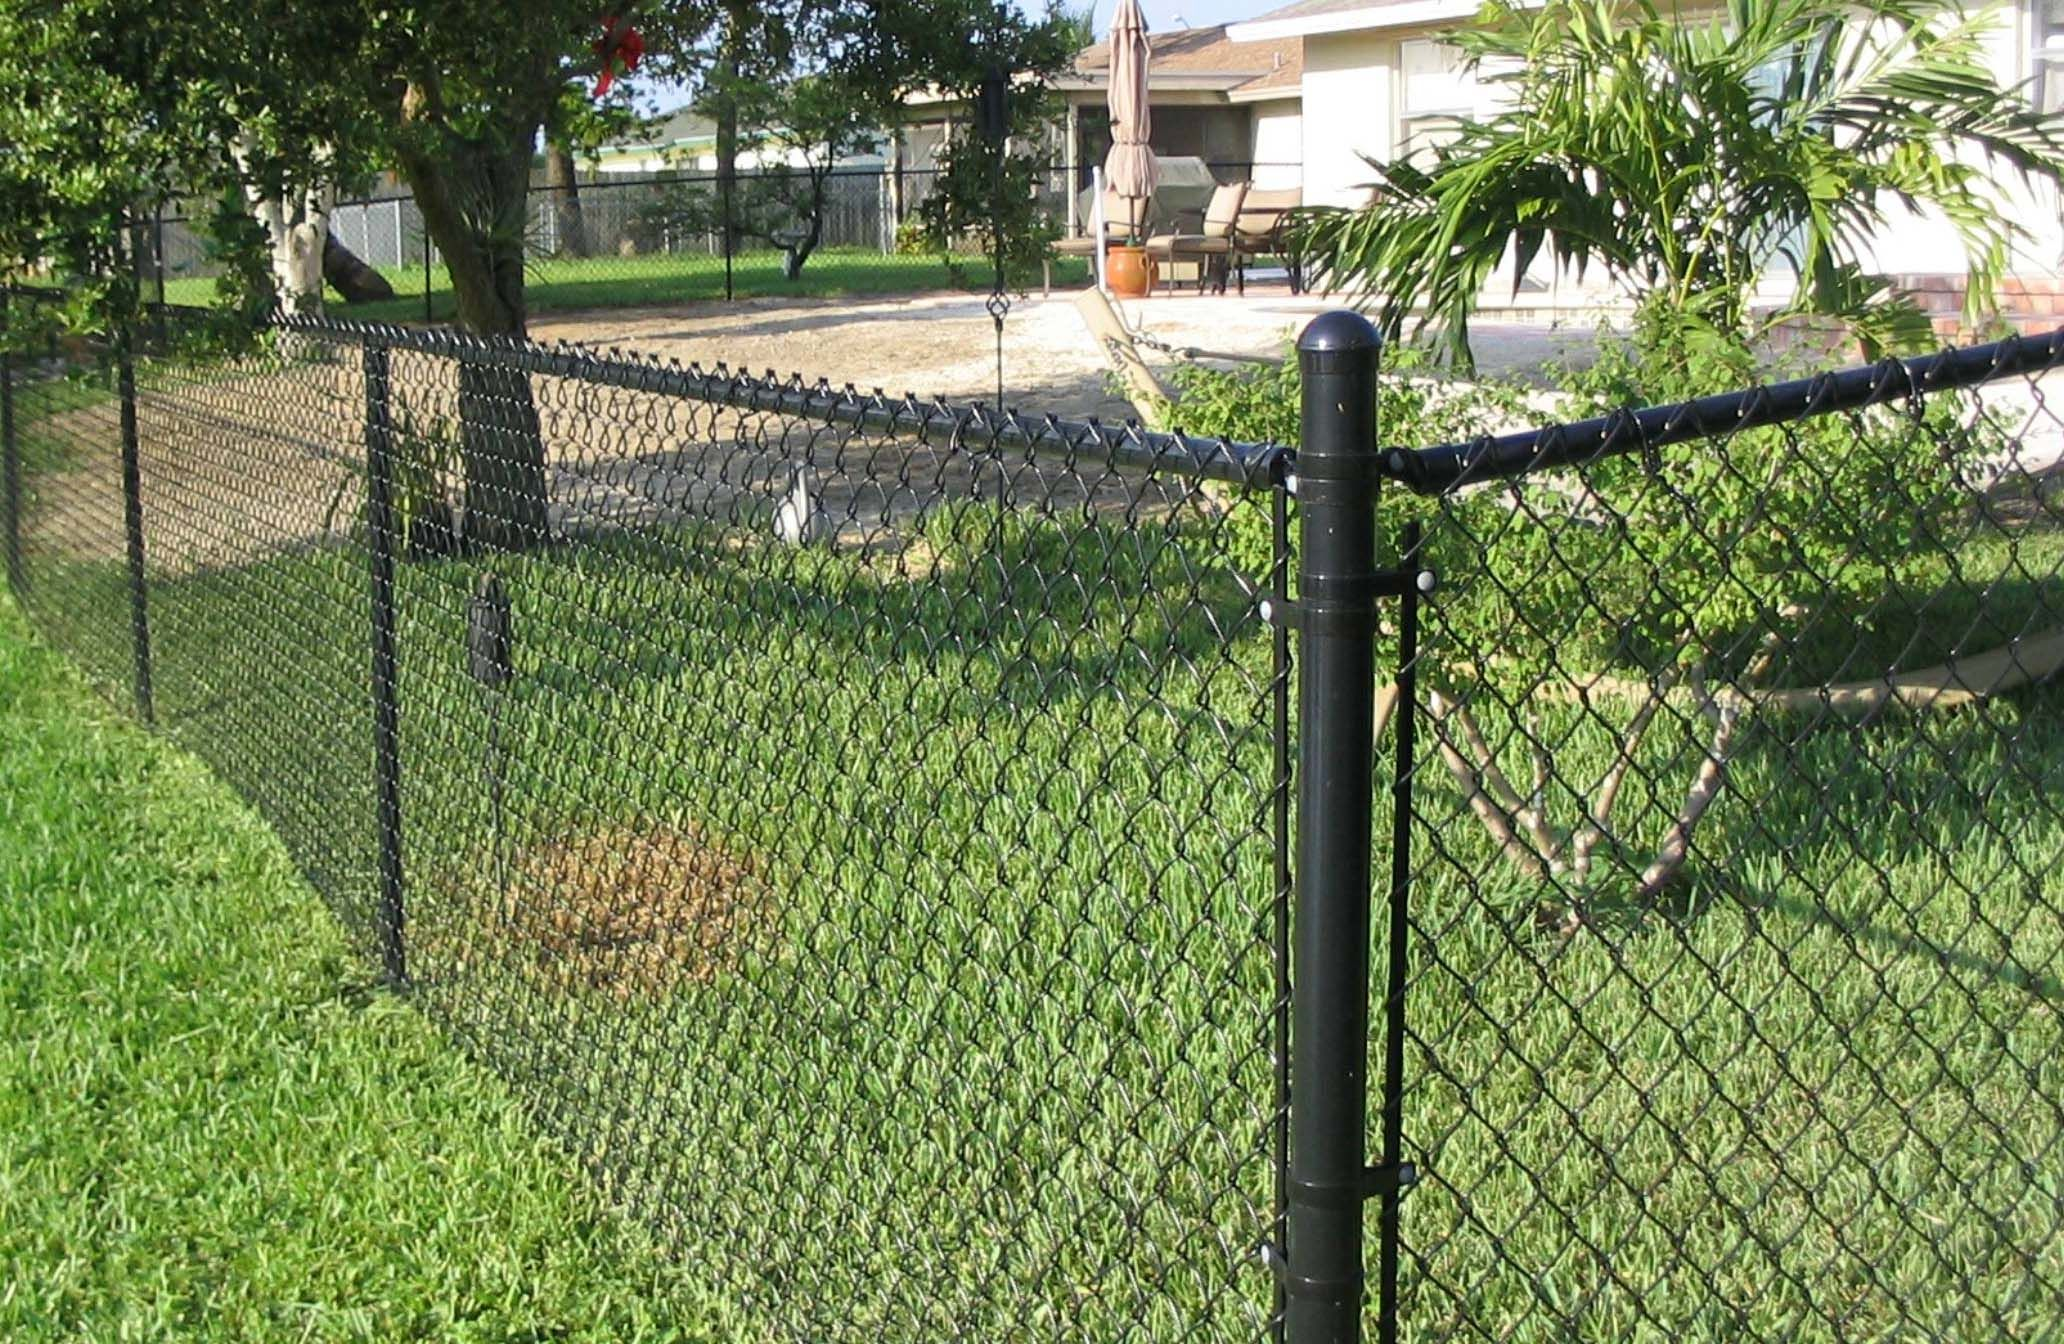 Chain Link Fence Buyers Guide Black Chain Link Fence Chain Link Fence Backyard Fences